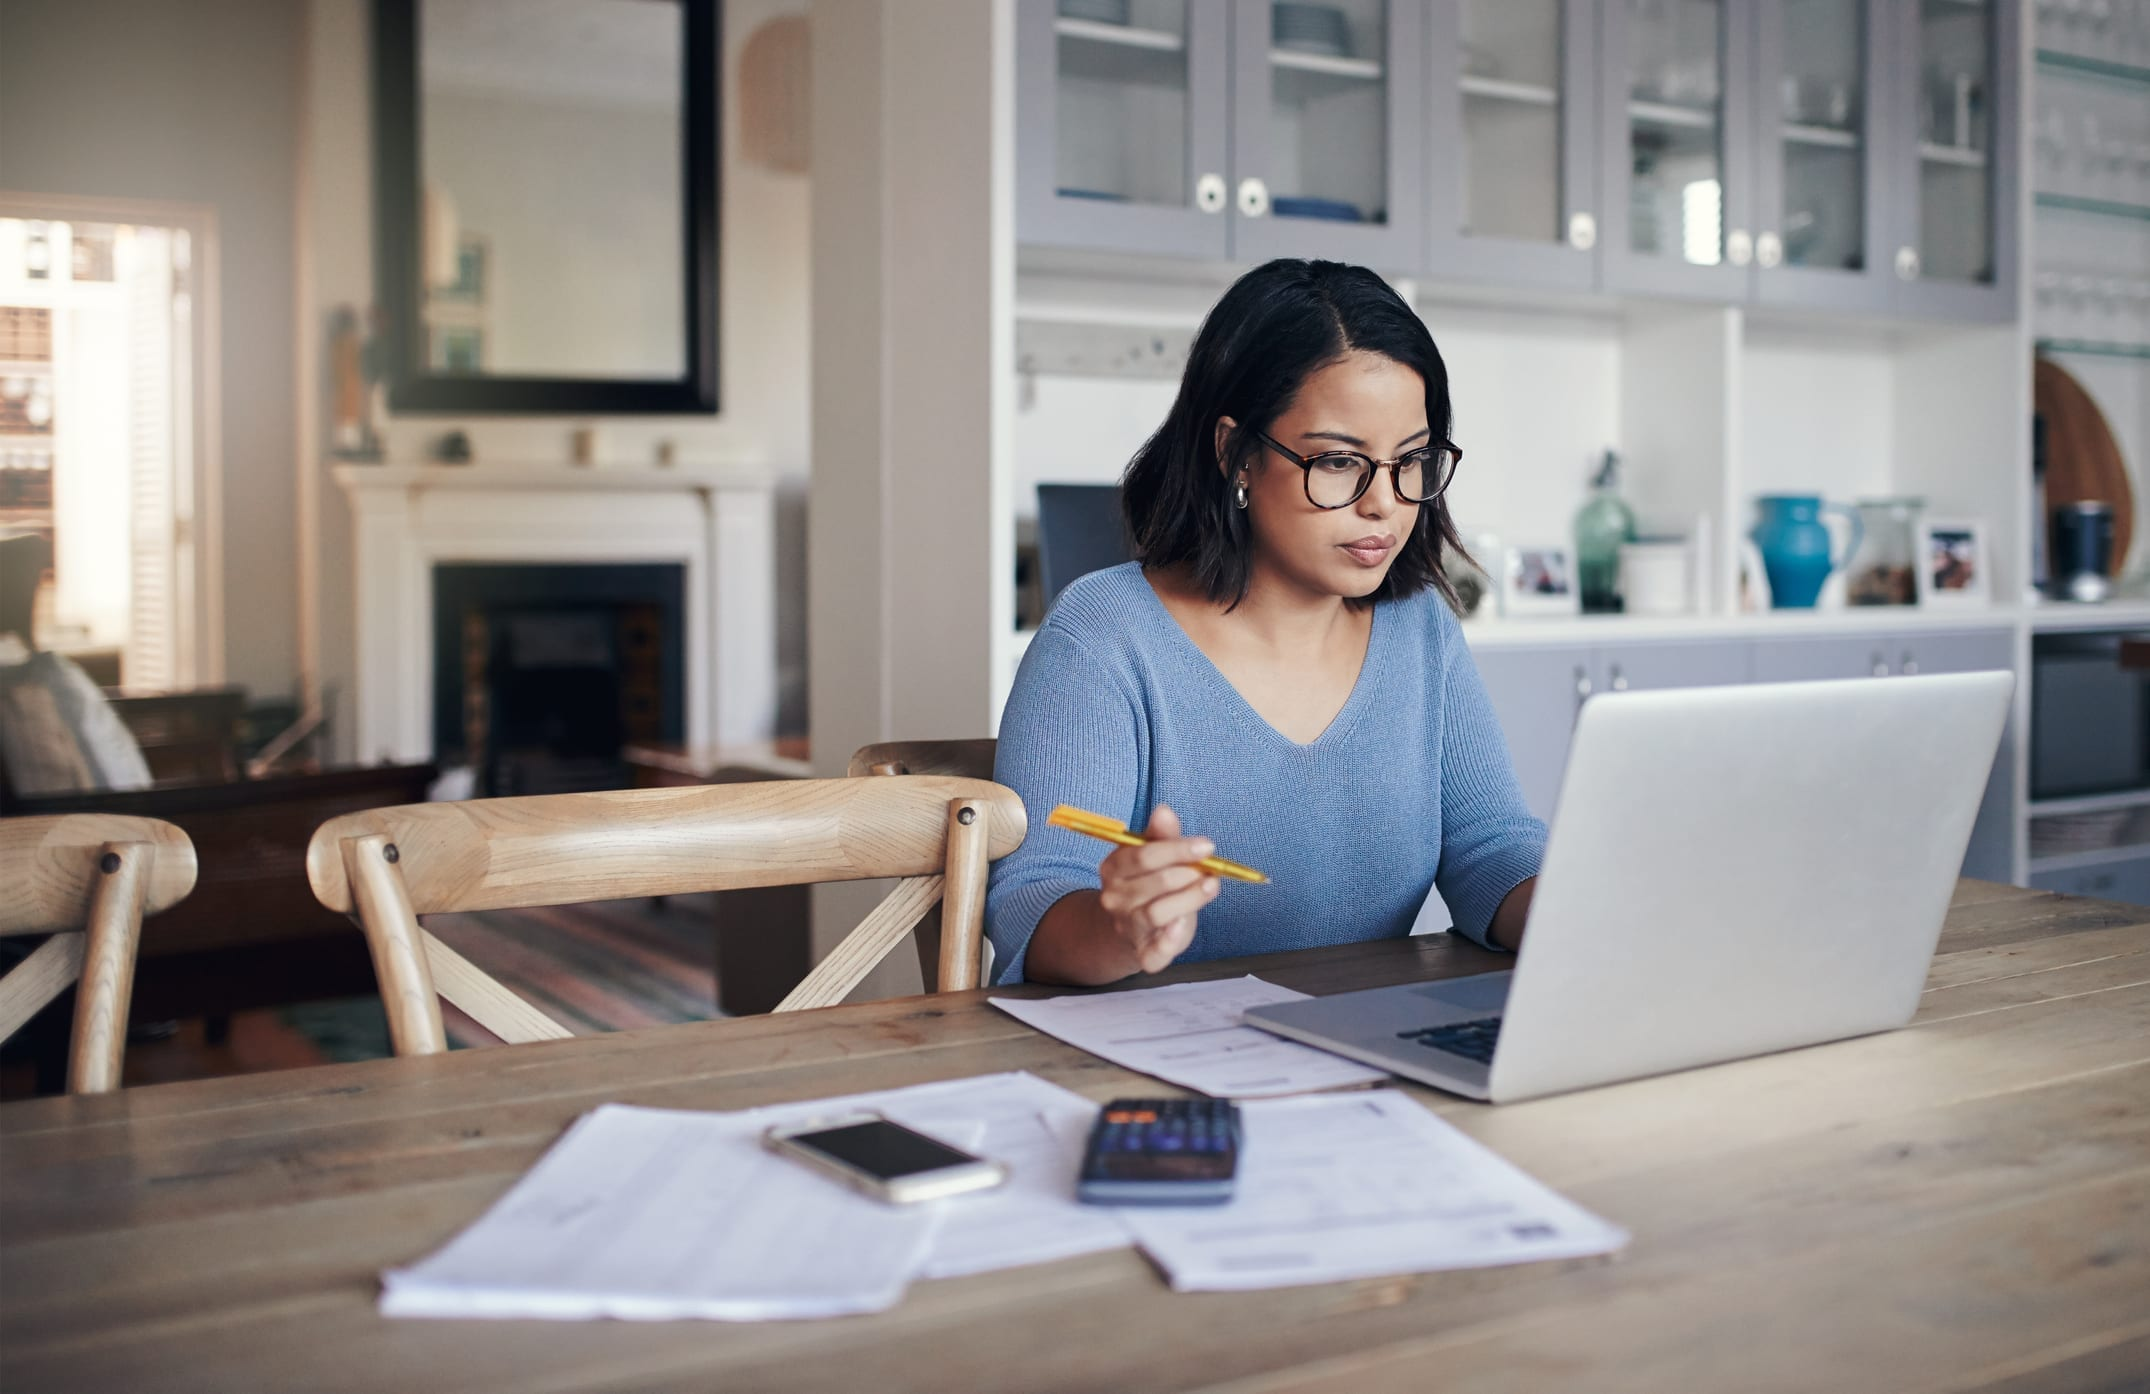 Shot of a young woman using a laptop while working from home